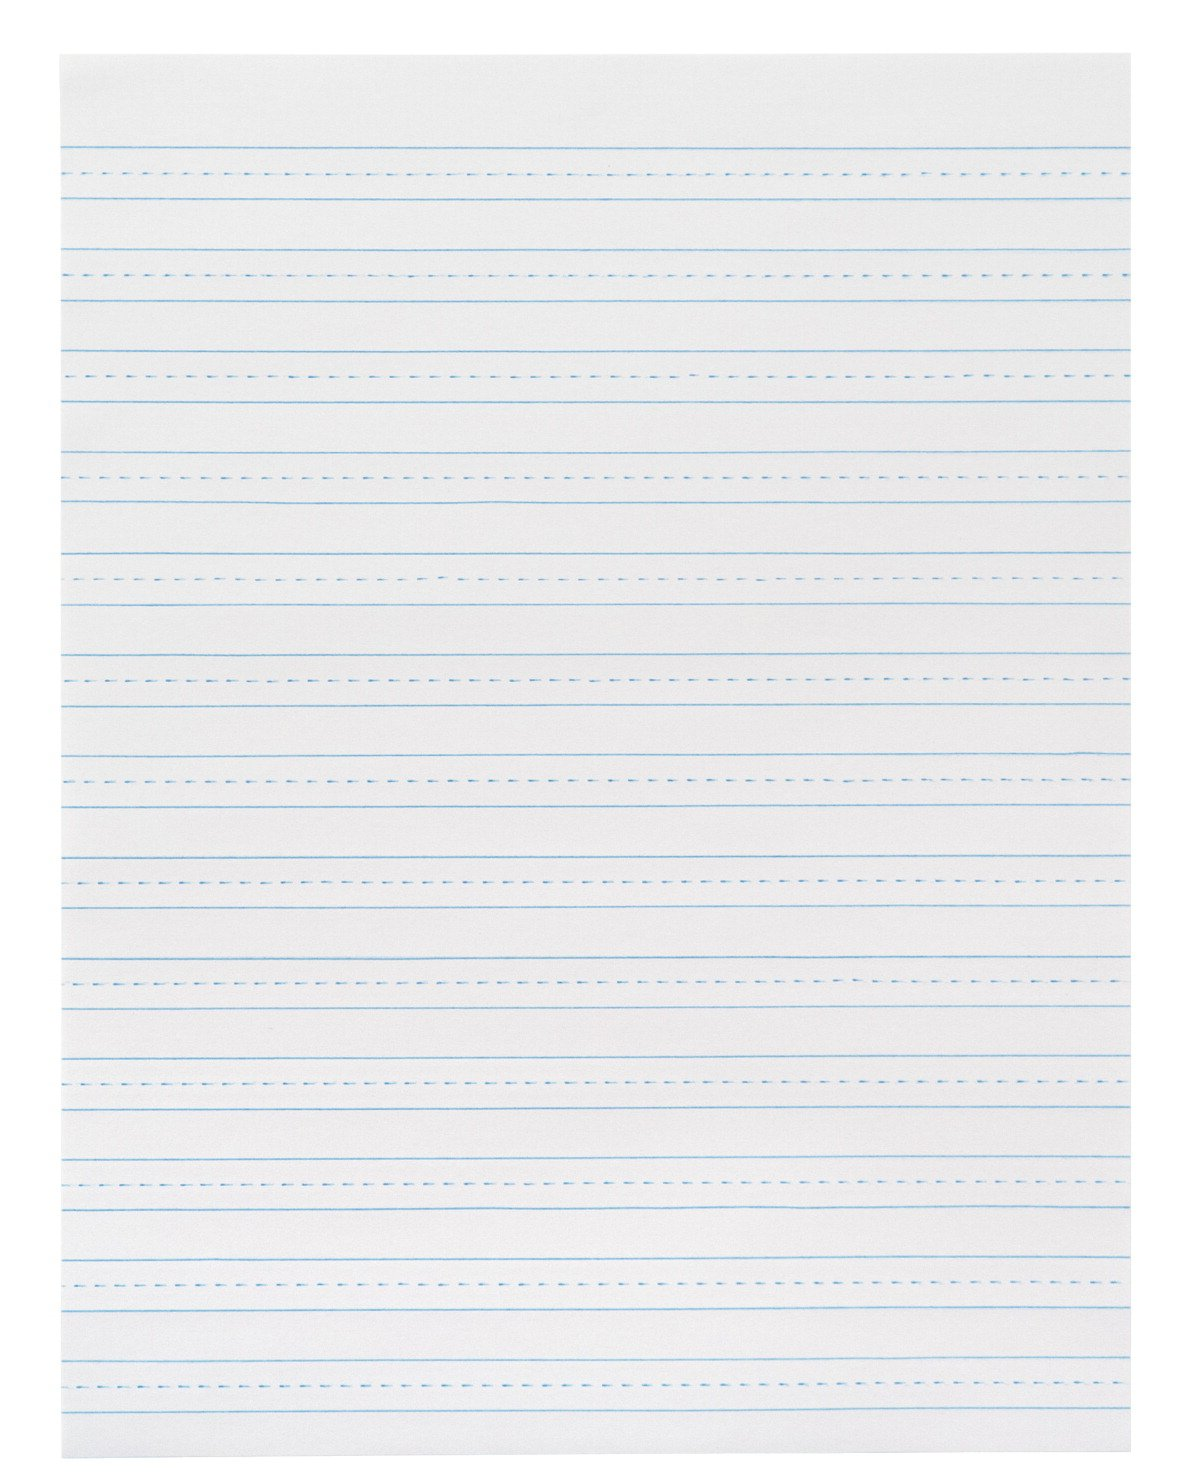 School Smart 3 Hole Skip A Line Filler Paper with Margin - 8 x 10 1/2 inches - Pack of 200 Sheets - White